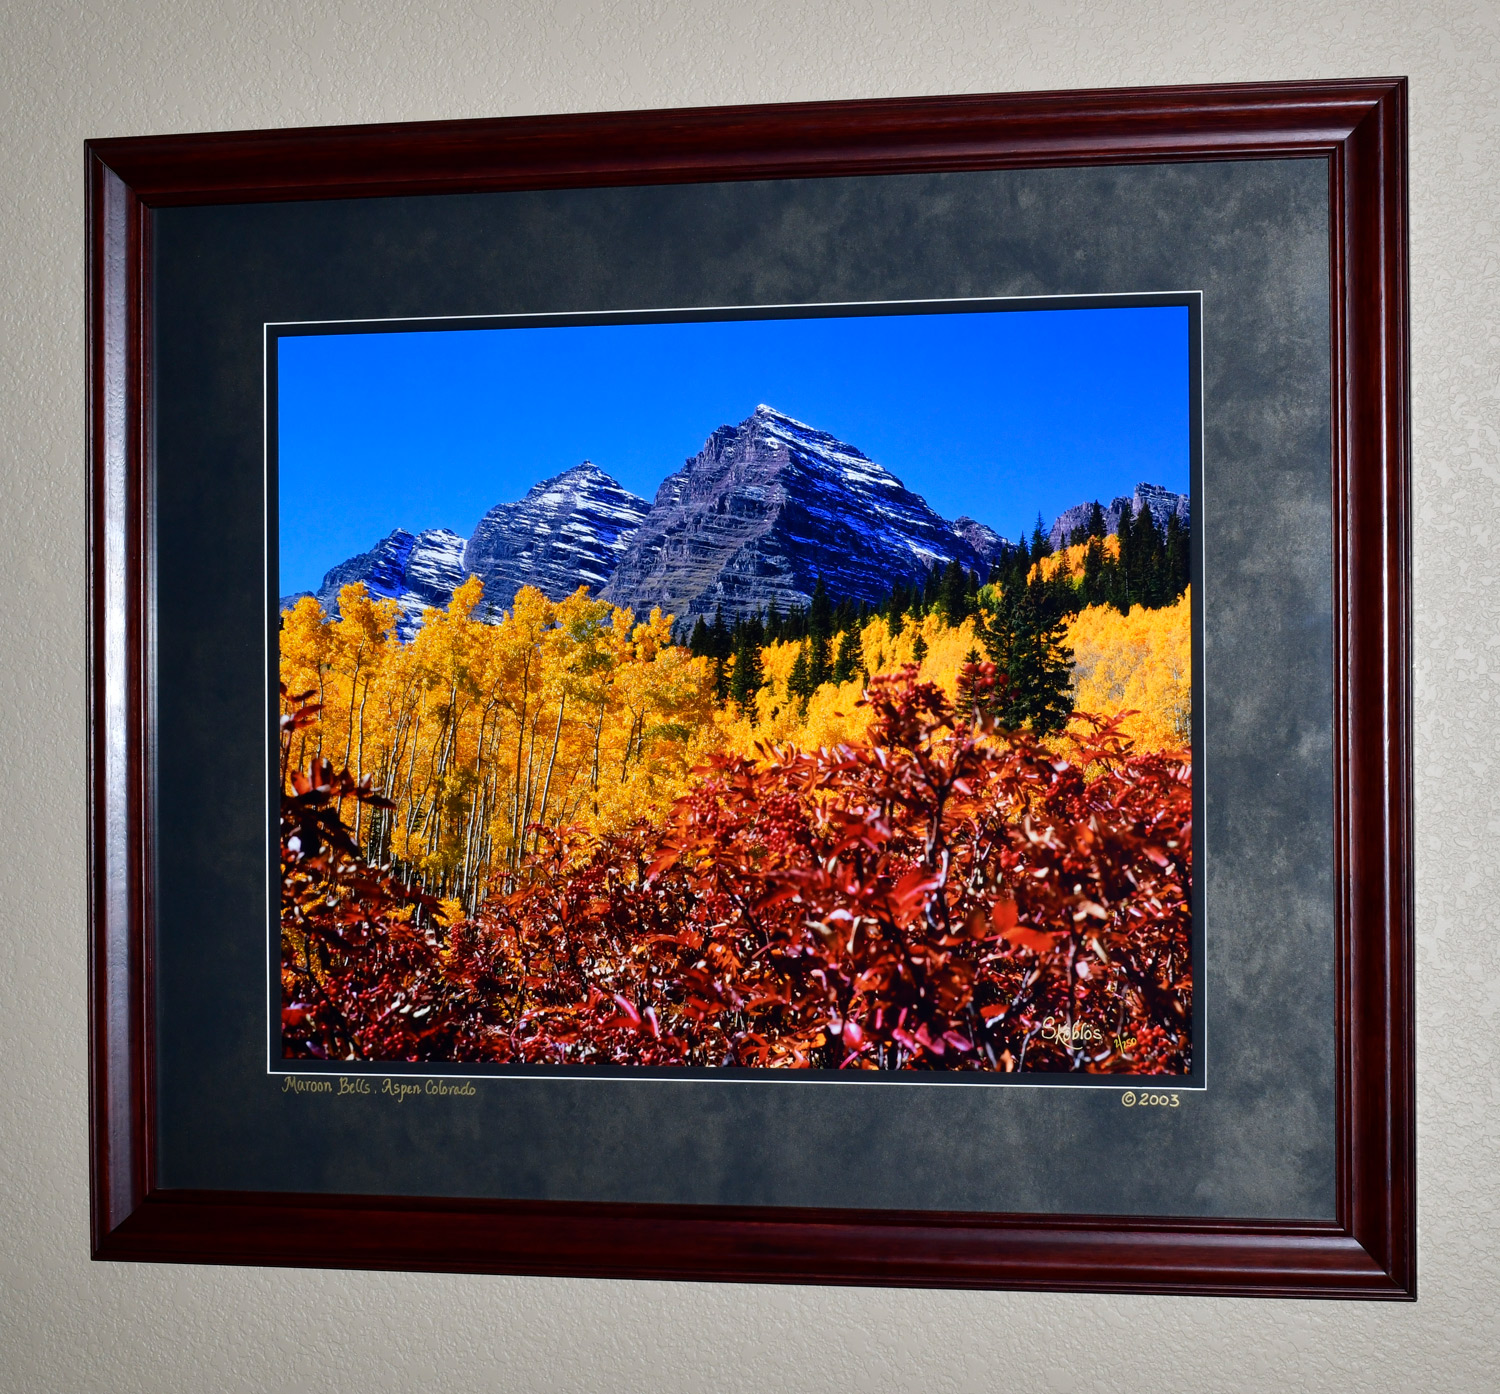 """The photo dimensions are 24""""x30"""". The frame dimensions are 36""""x42""""."""